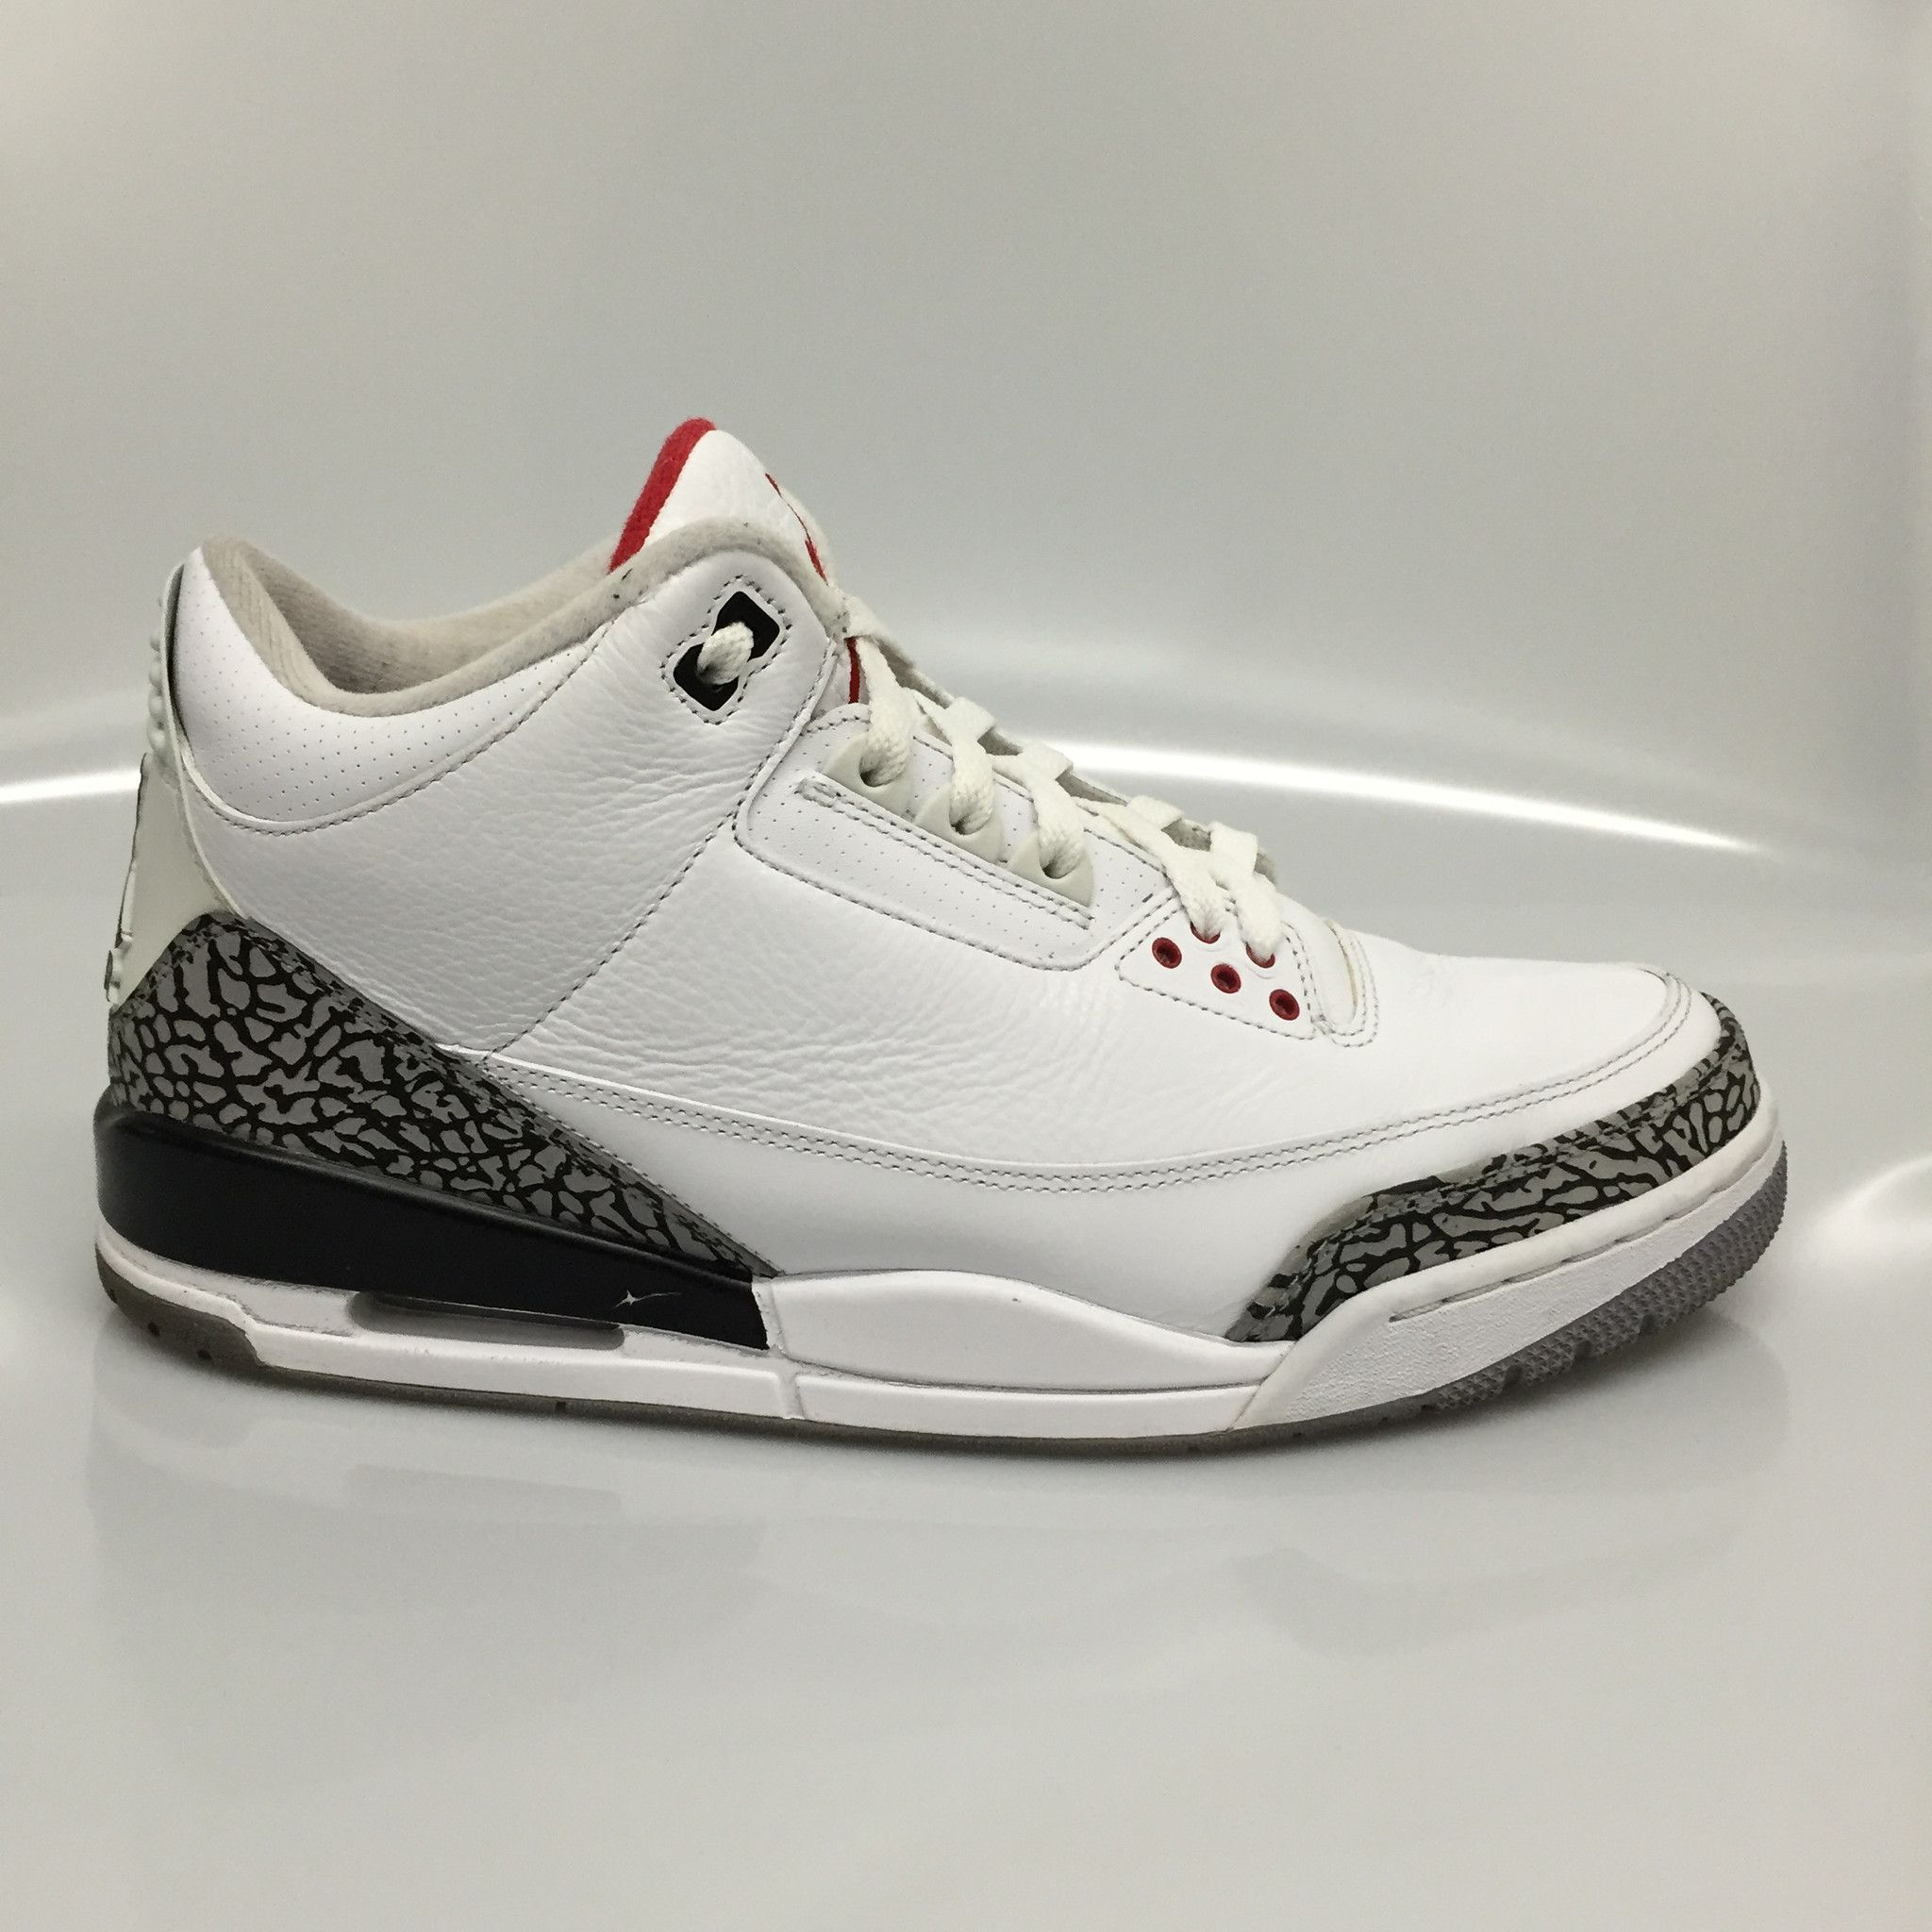 9d63b571bb07b2 ... germany air jordan 3 white cement size 11.5 pre owned d3a83 19aac